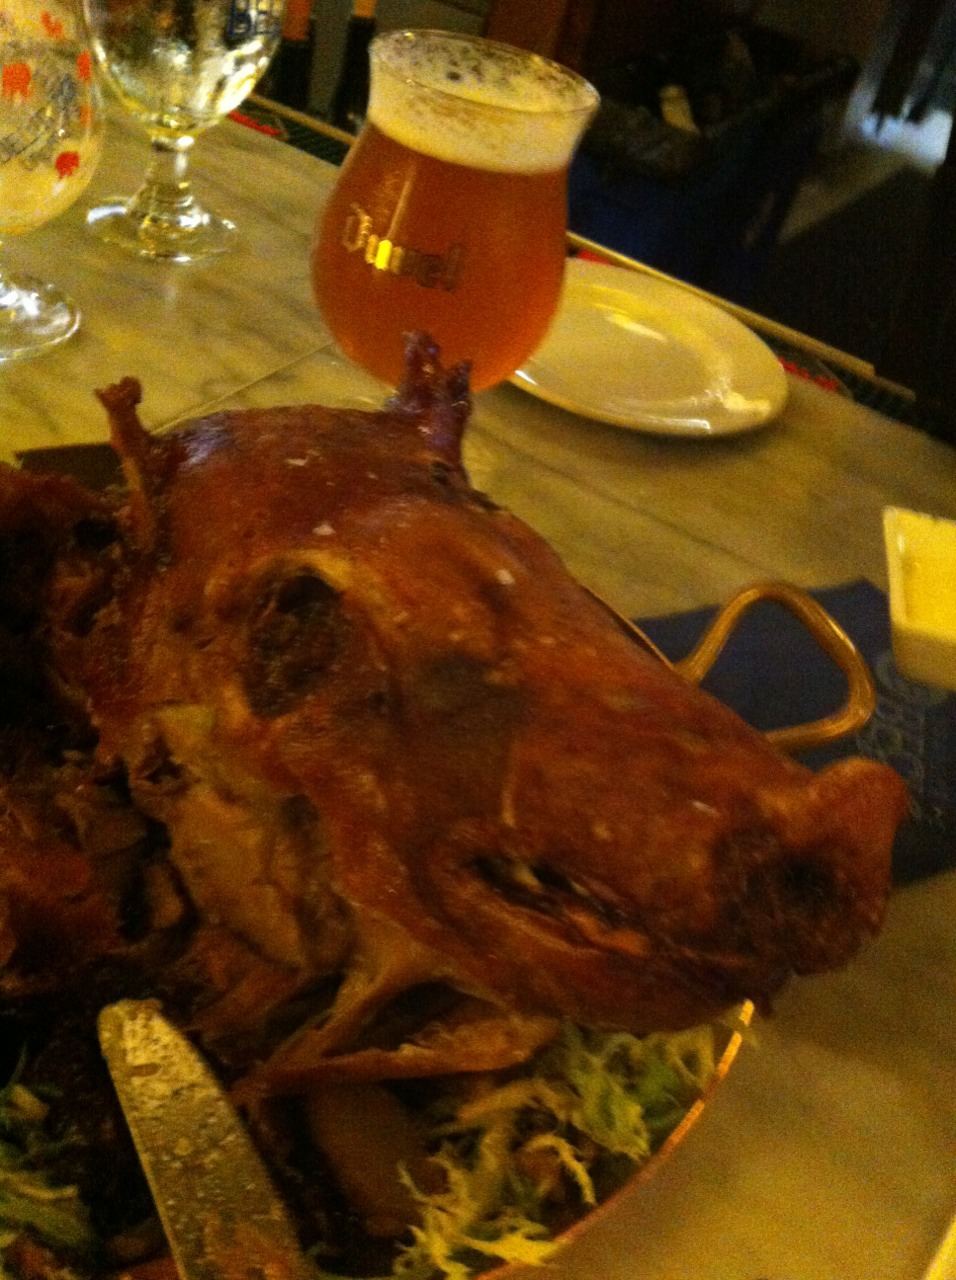 Eating this pig head was surprisingly NOT the most interesting aspect of last night.